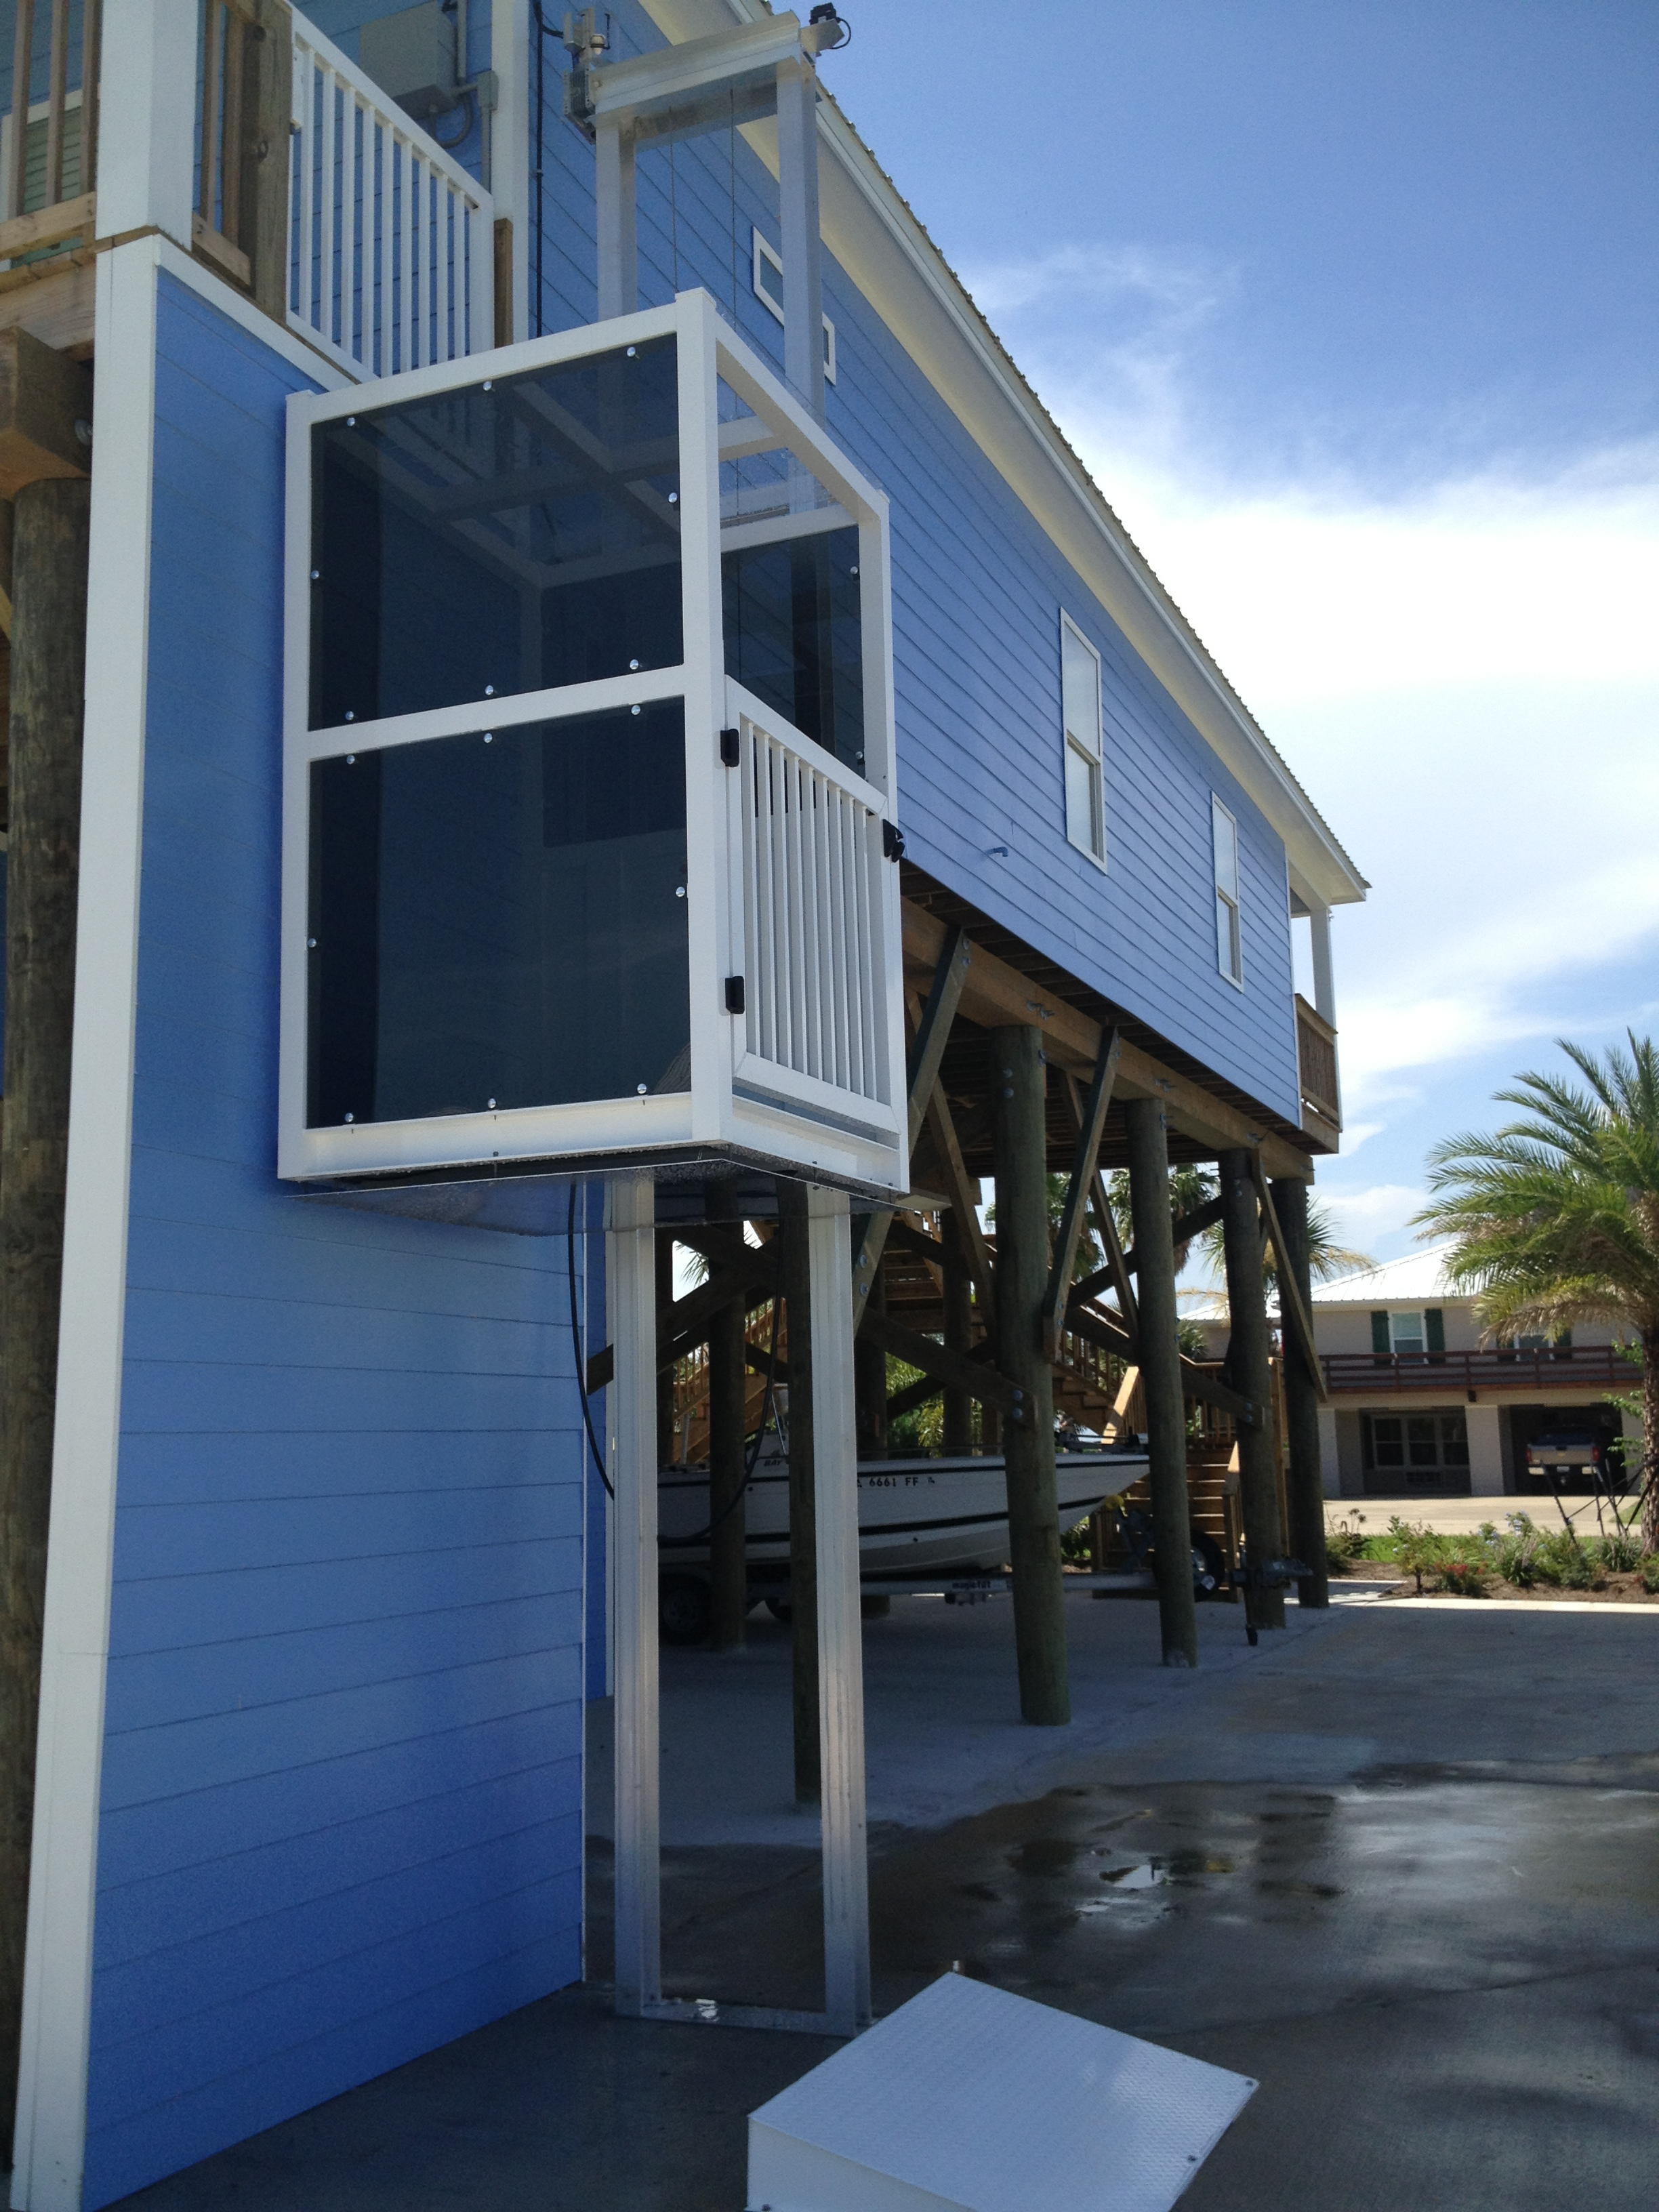 Residential Elevators Wheelchair Handicap Lifts Cargo